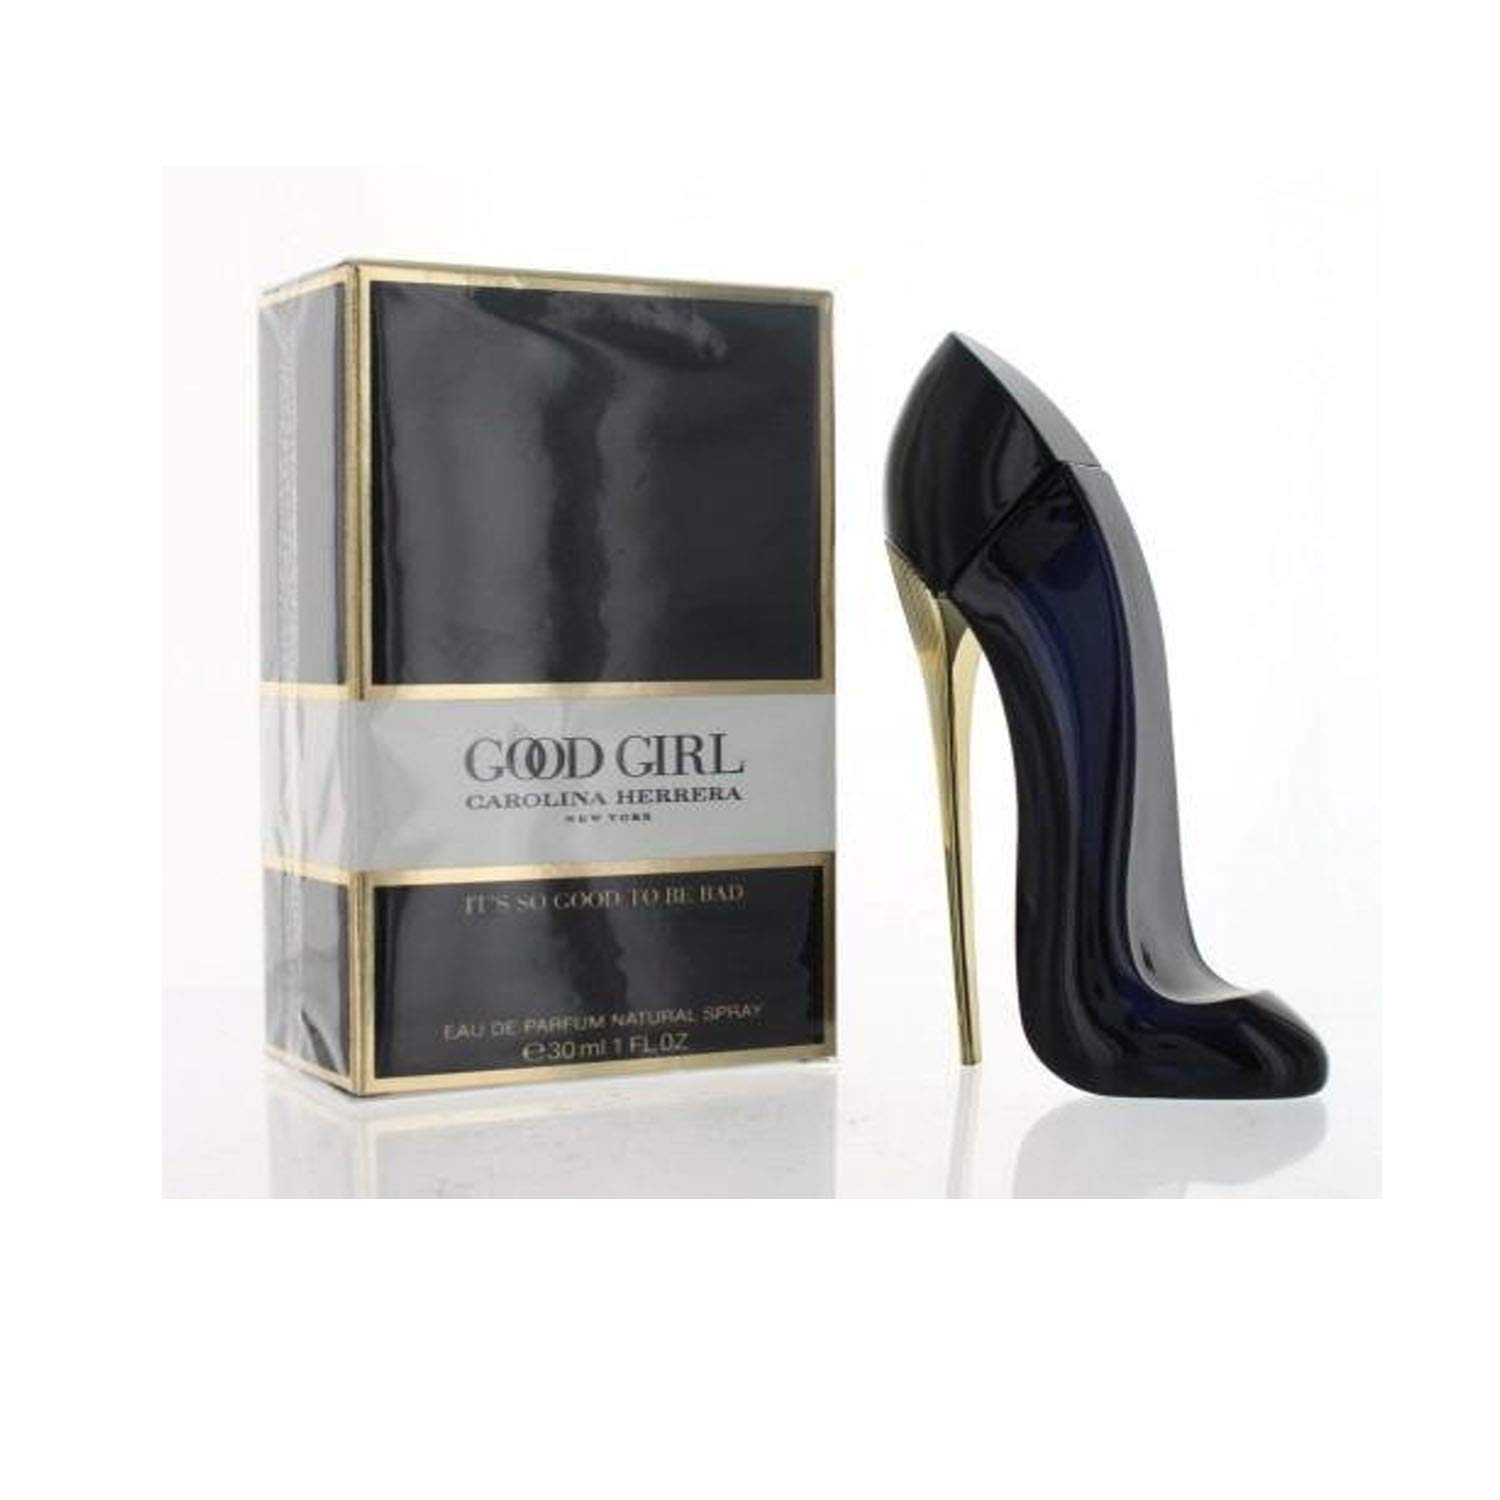 3d0e9310e Amazon.com  CAROLINA HERRERA Good Girl Eau de Perfume Spray